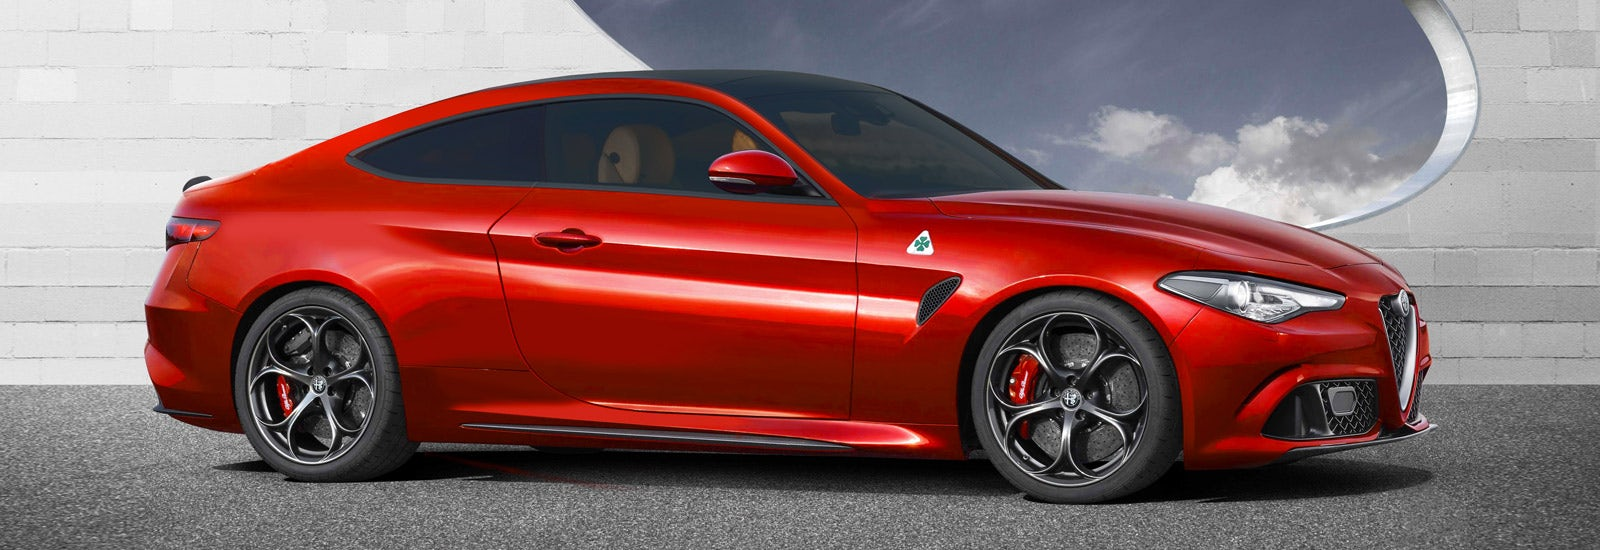 2019 alfa romeo giulia coupe gtv price specs and release date carwow. Black Bedroom Furniture Sets. Home Design Ideas